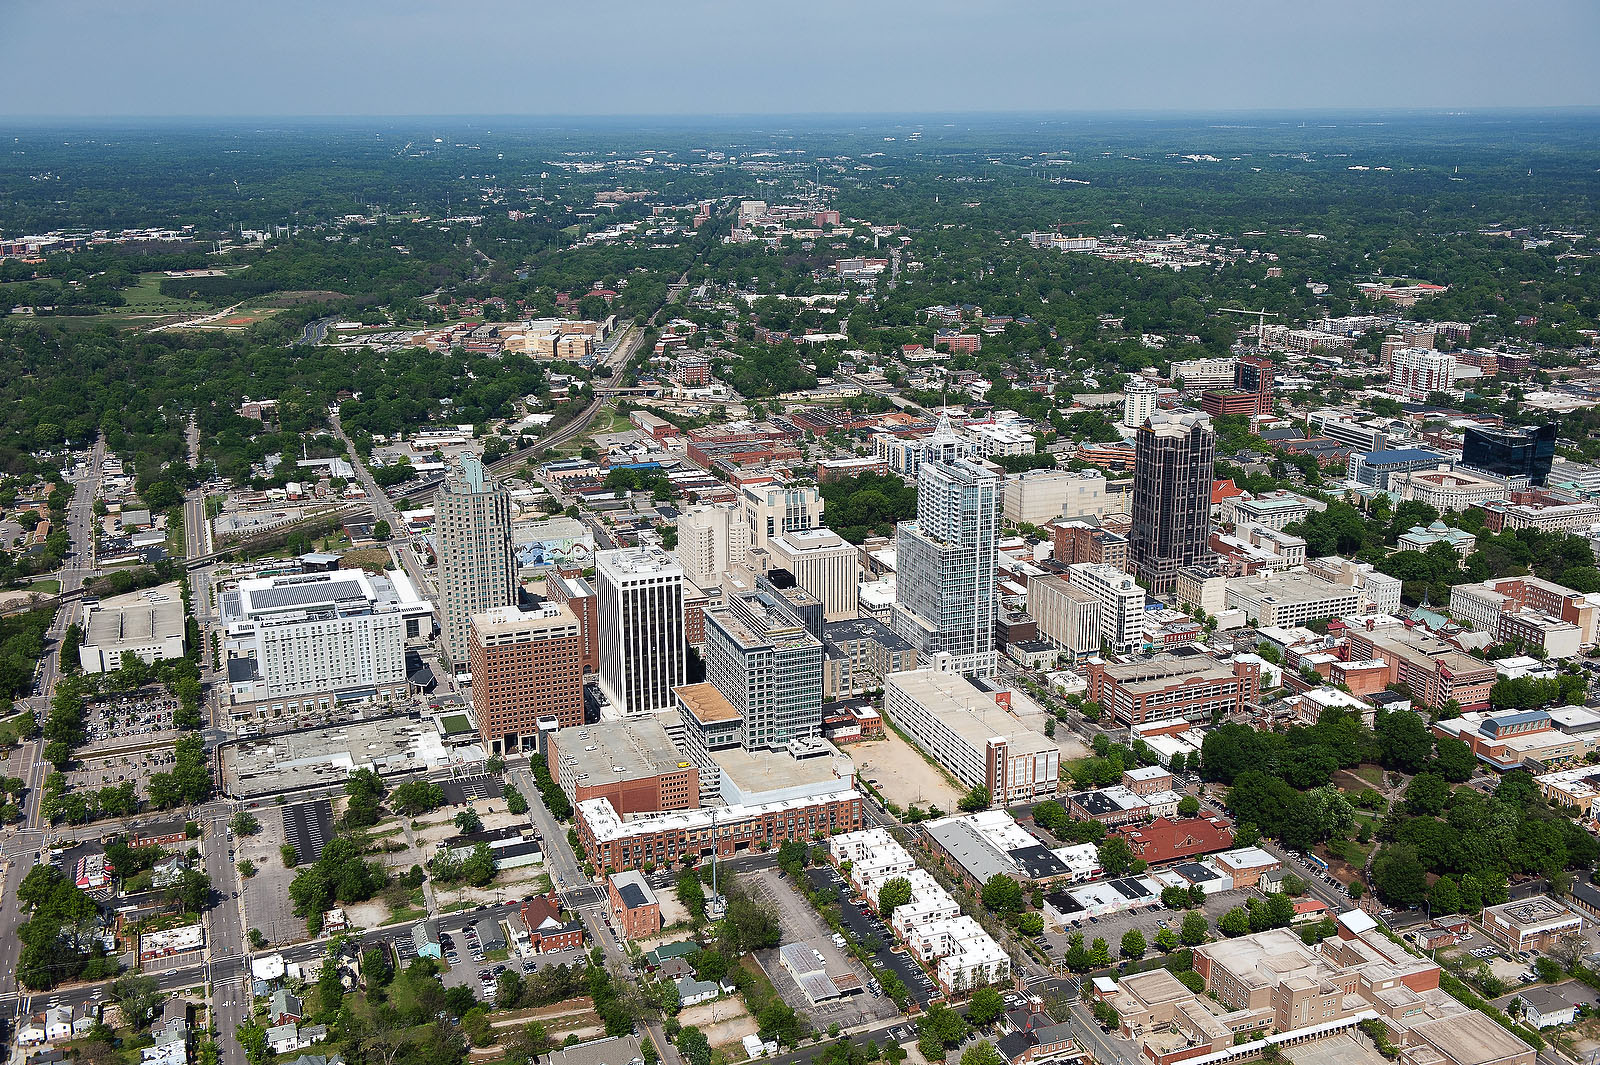 Aerial View of Downtown Raleigh